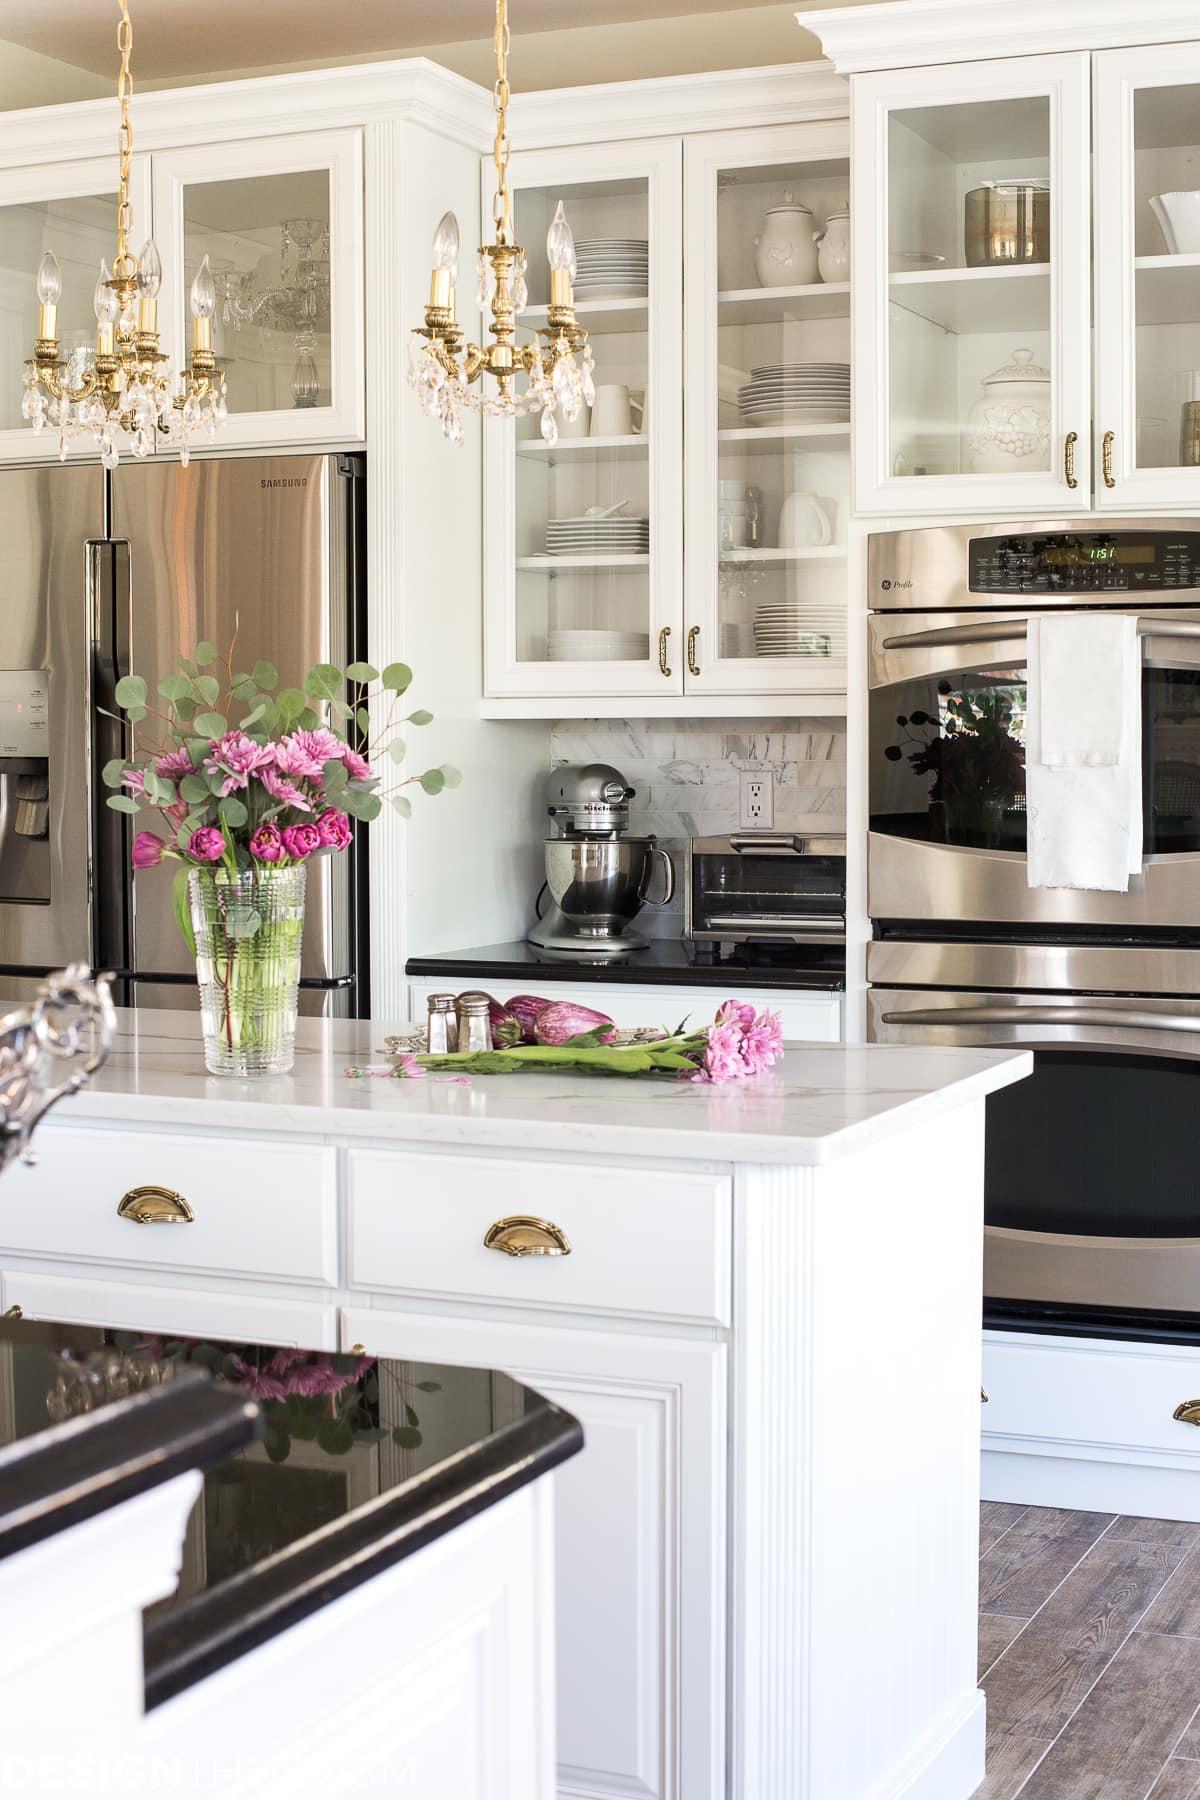 Kitchen Upgrades: 5 Things I Do to Keep My Kitchen Efficient